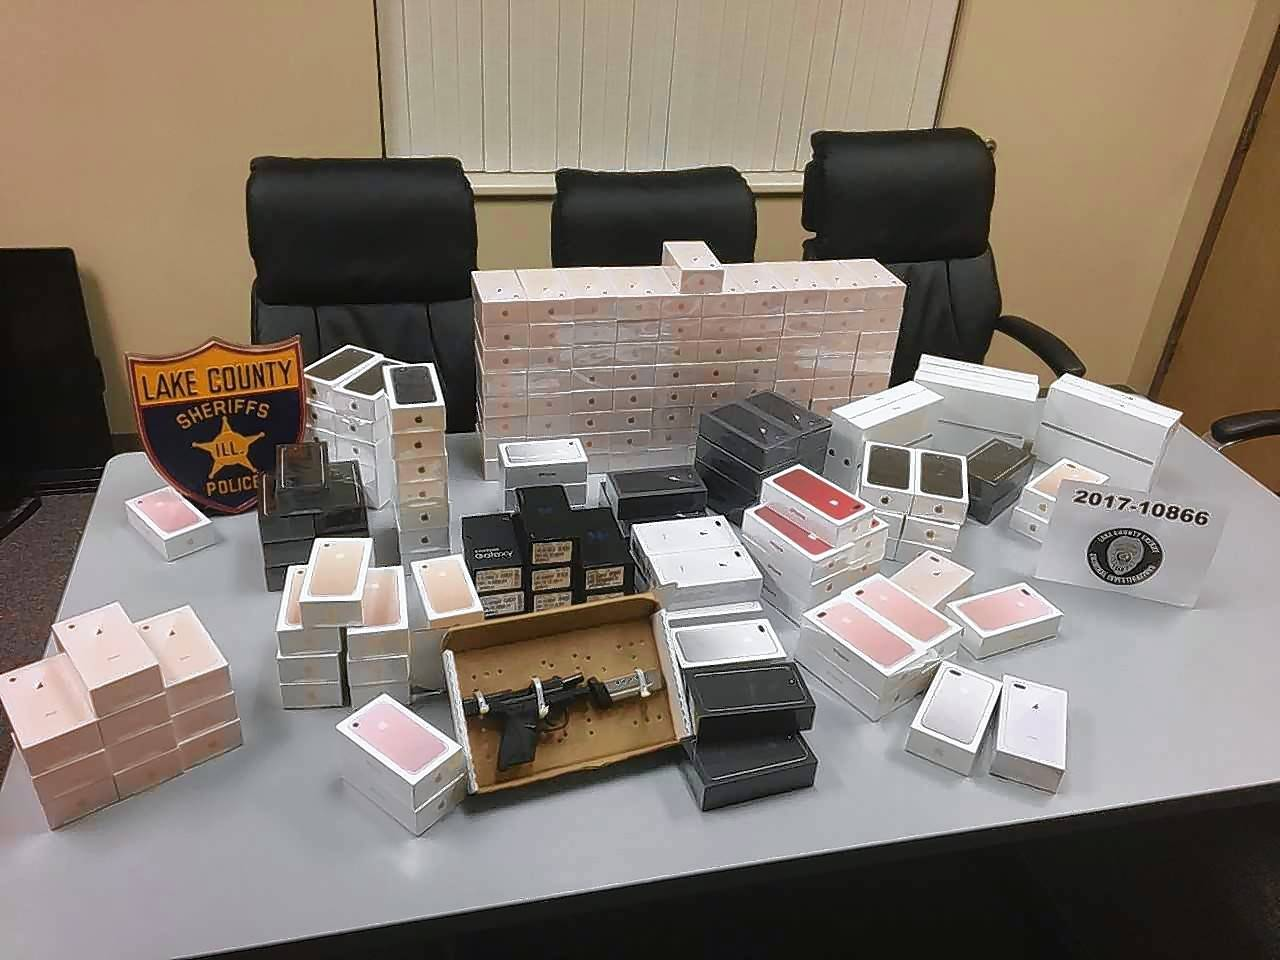 Authorities say these items stolen from the AT&T Store in Deer Park during an armed robbery Wednesday were recovered later from two men suspected in the holdup.